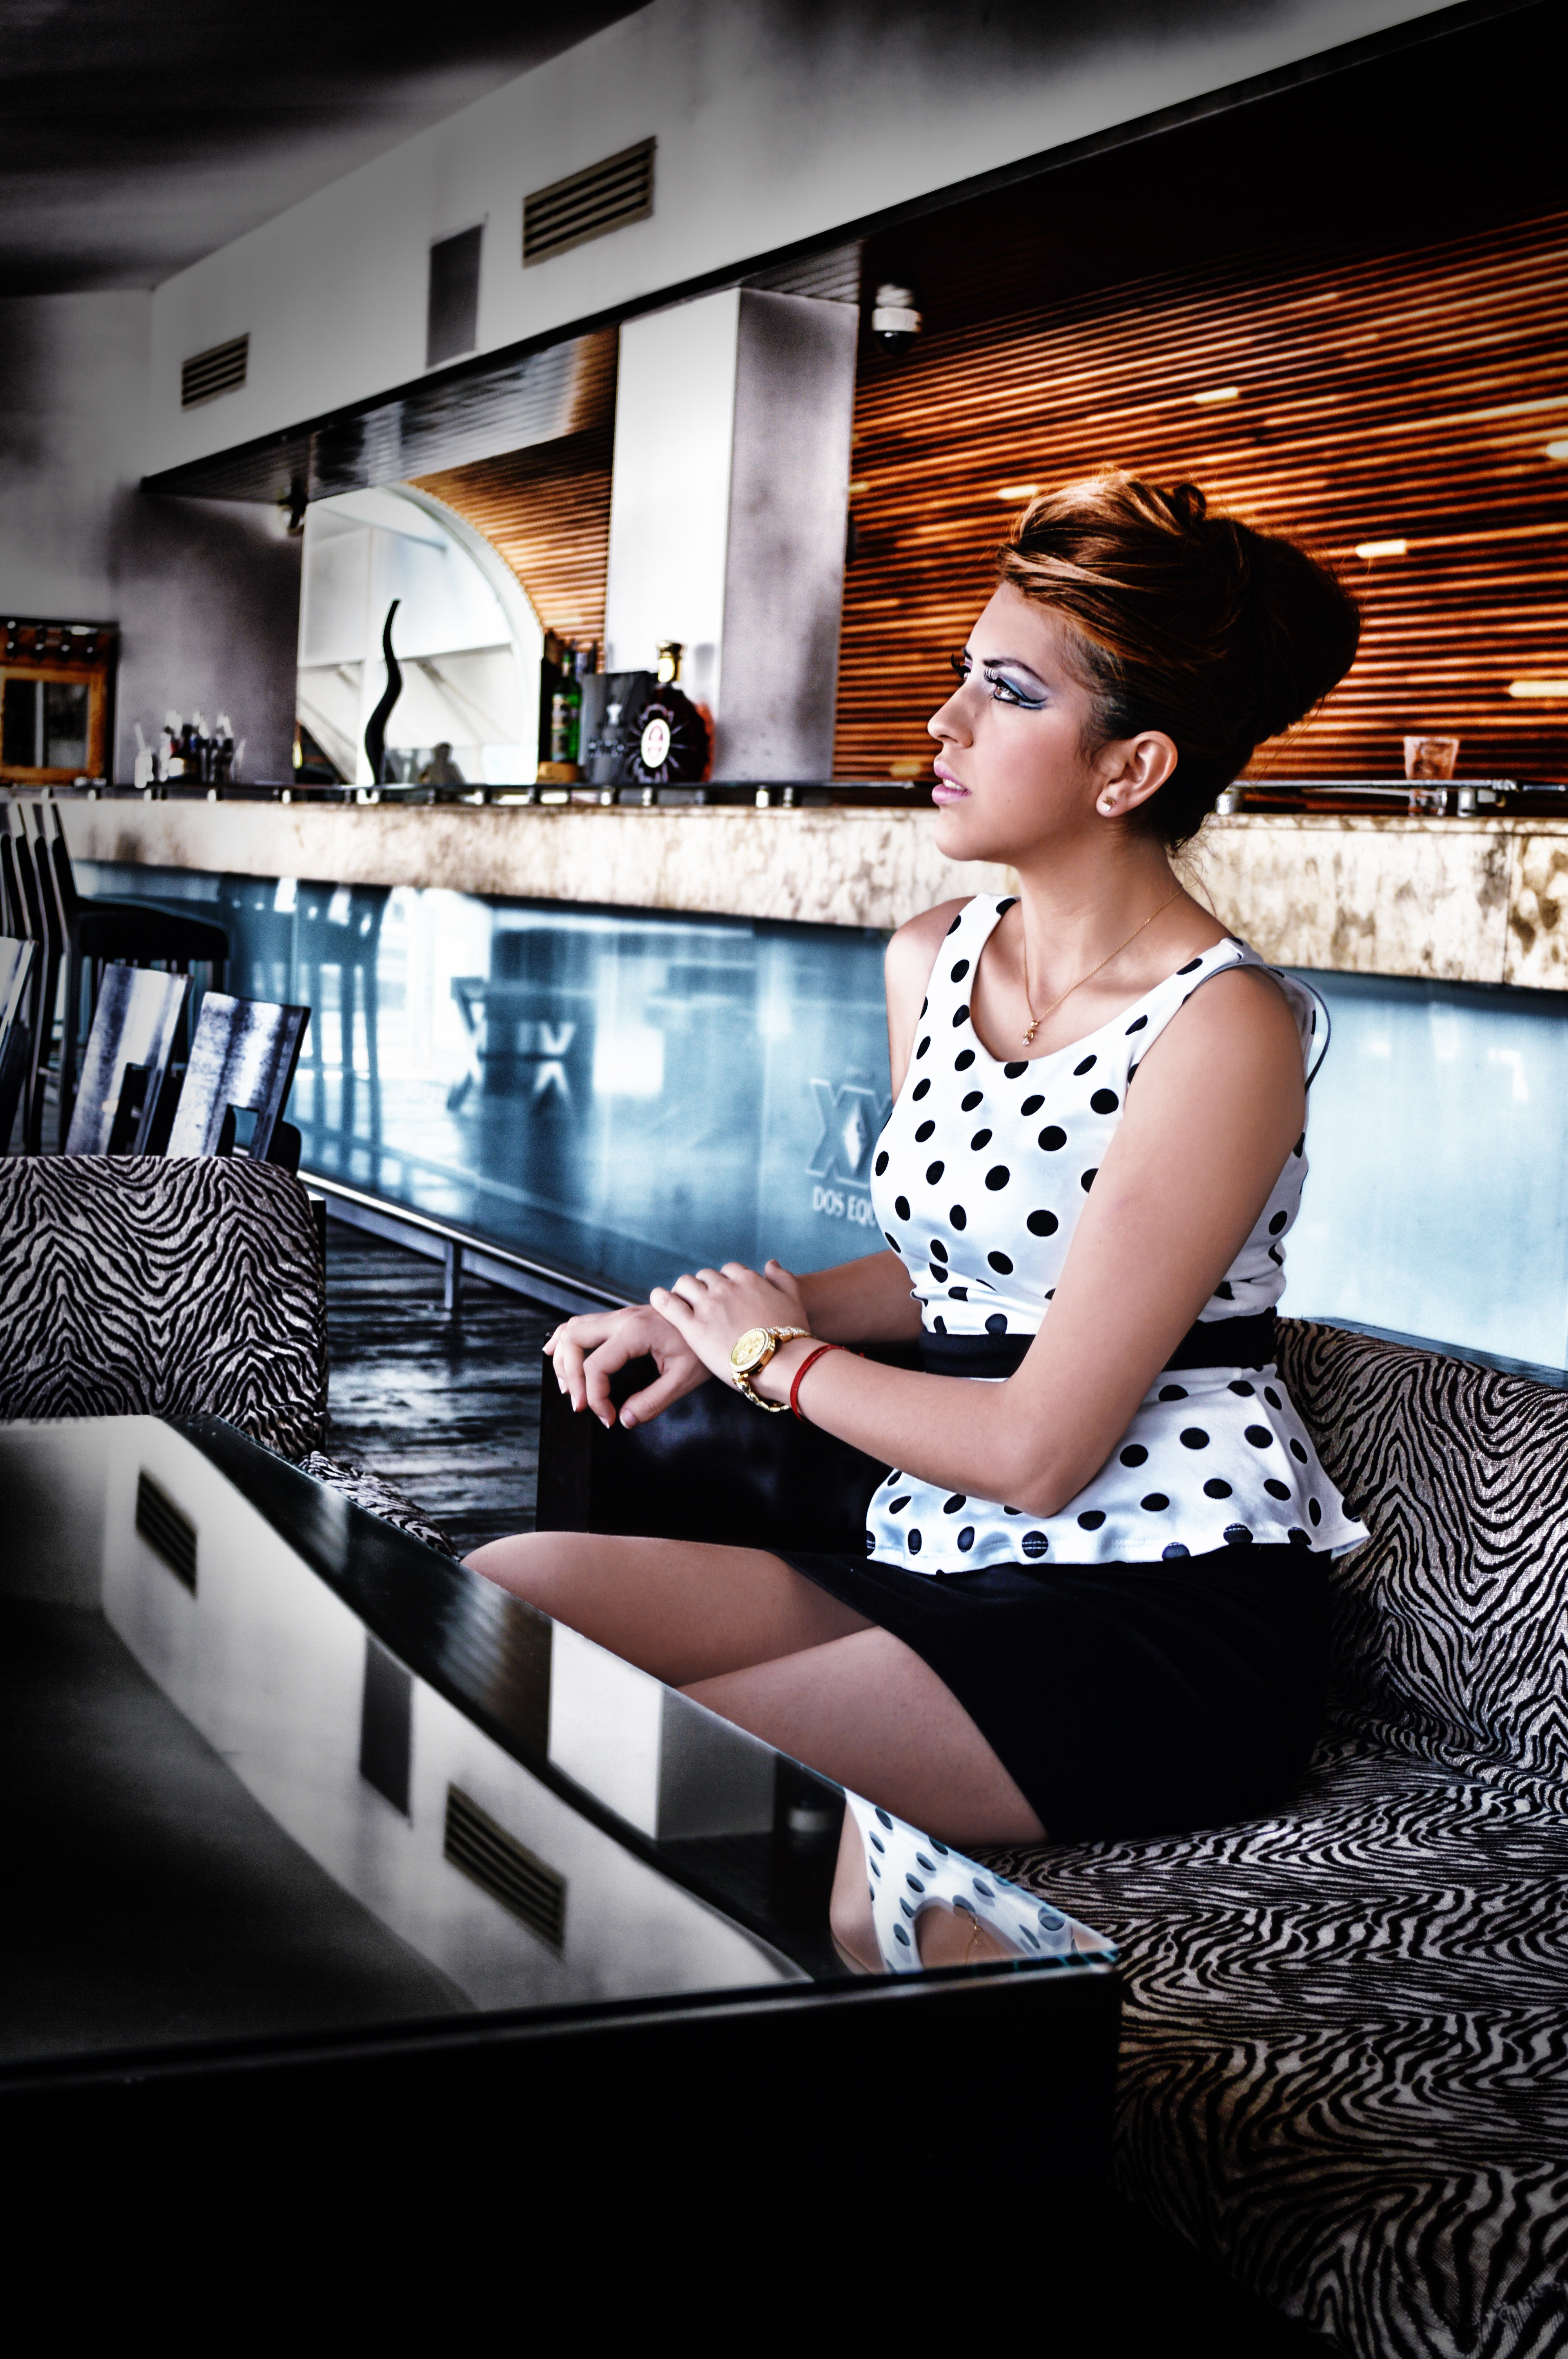 Women in White and Black Dress Sitting on Couch, Adult, Mirror, Woman, Wear, HQ Photo